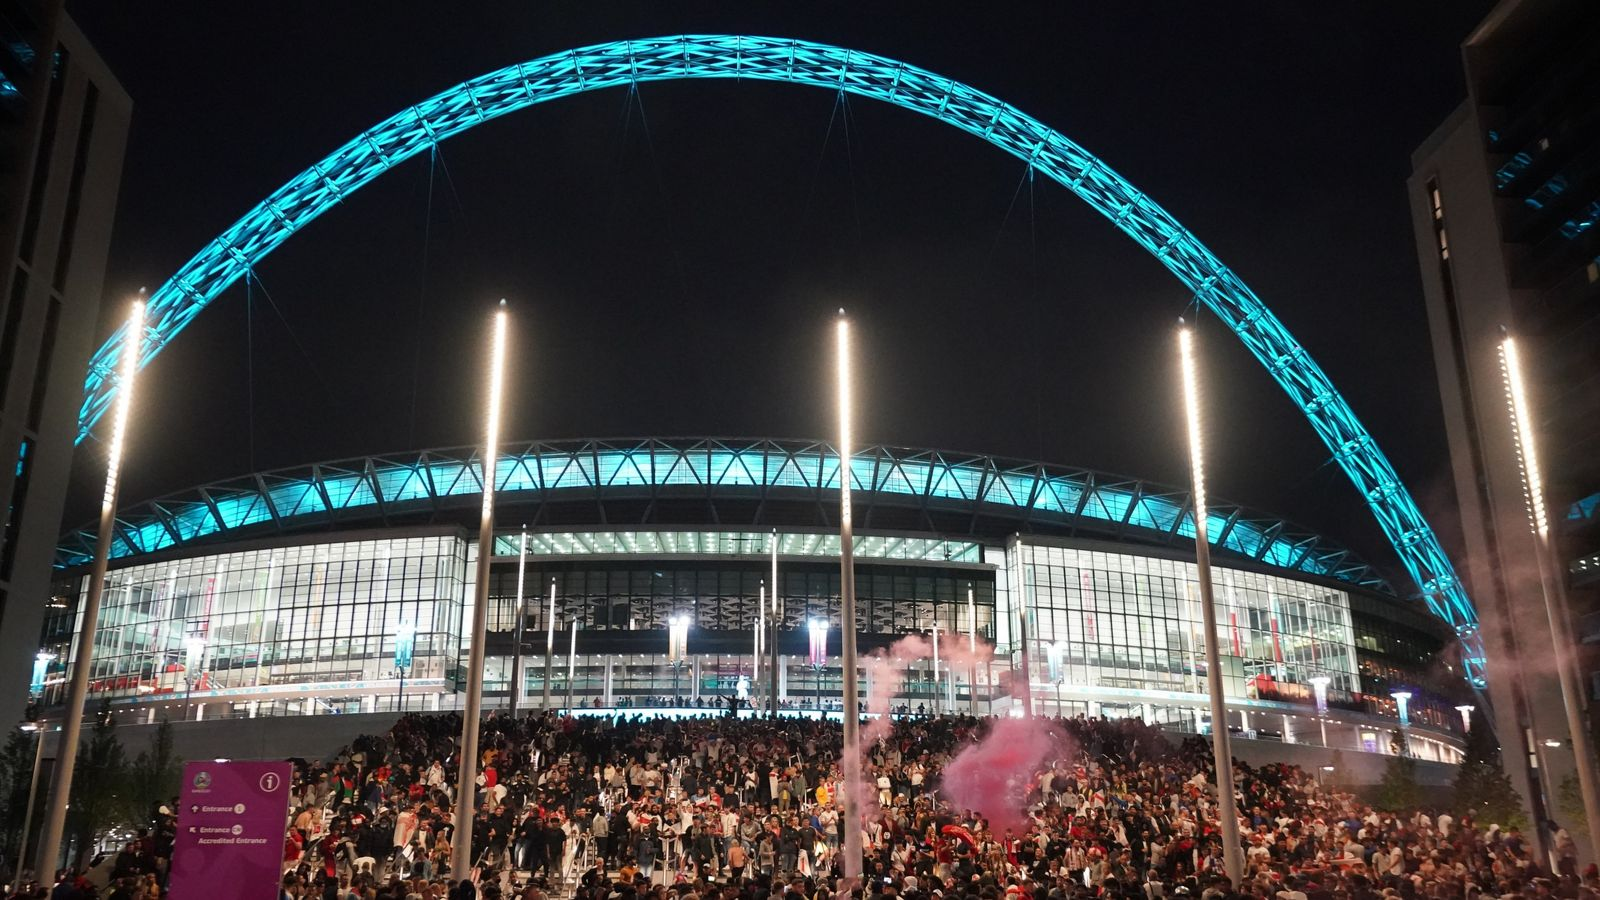 England set for Wembley stadium ban as UEFA consider punishment for Euro 2020 final crowd trouble